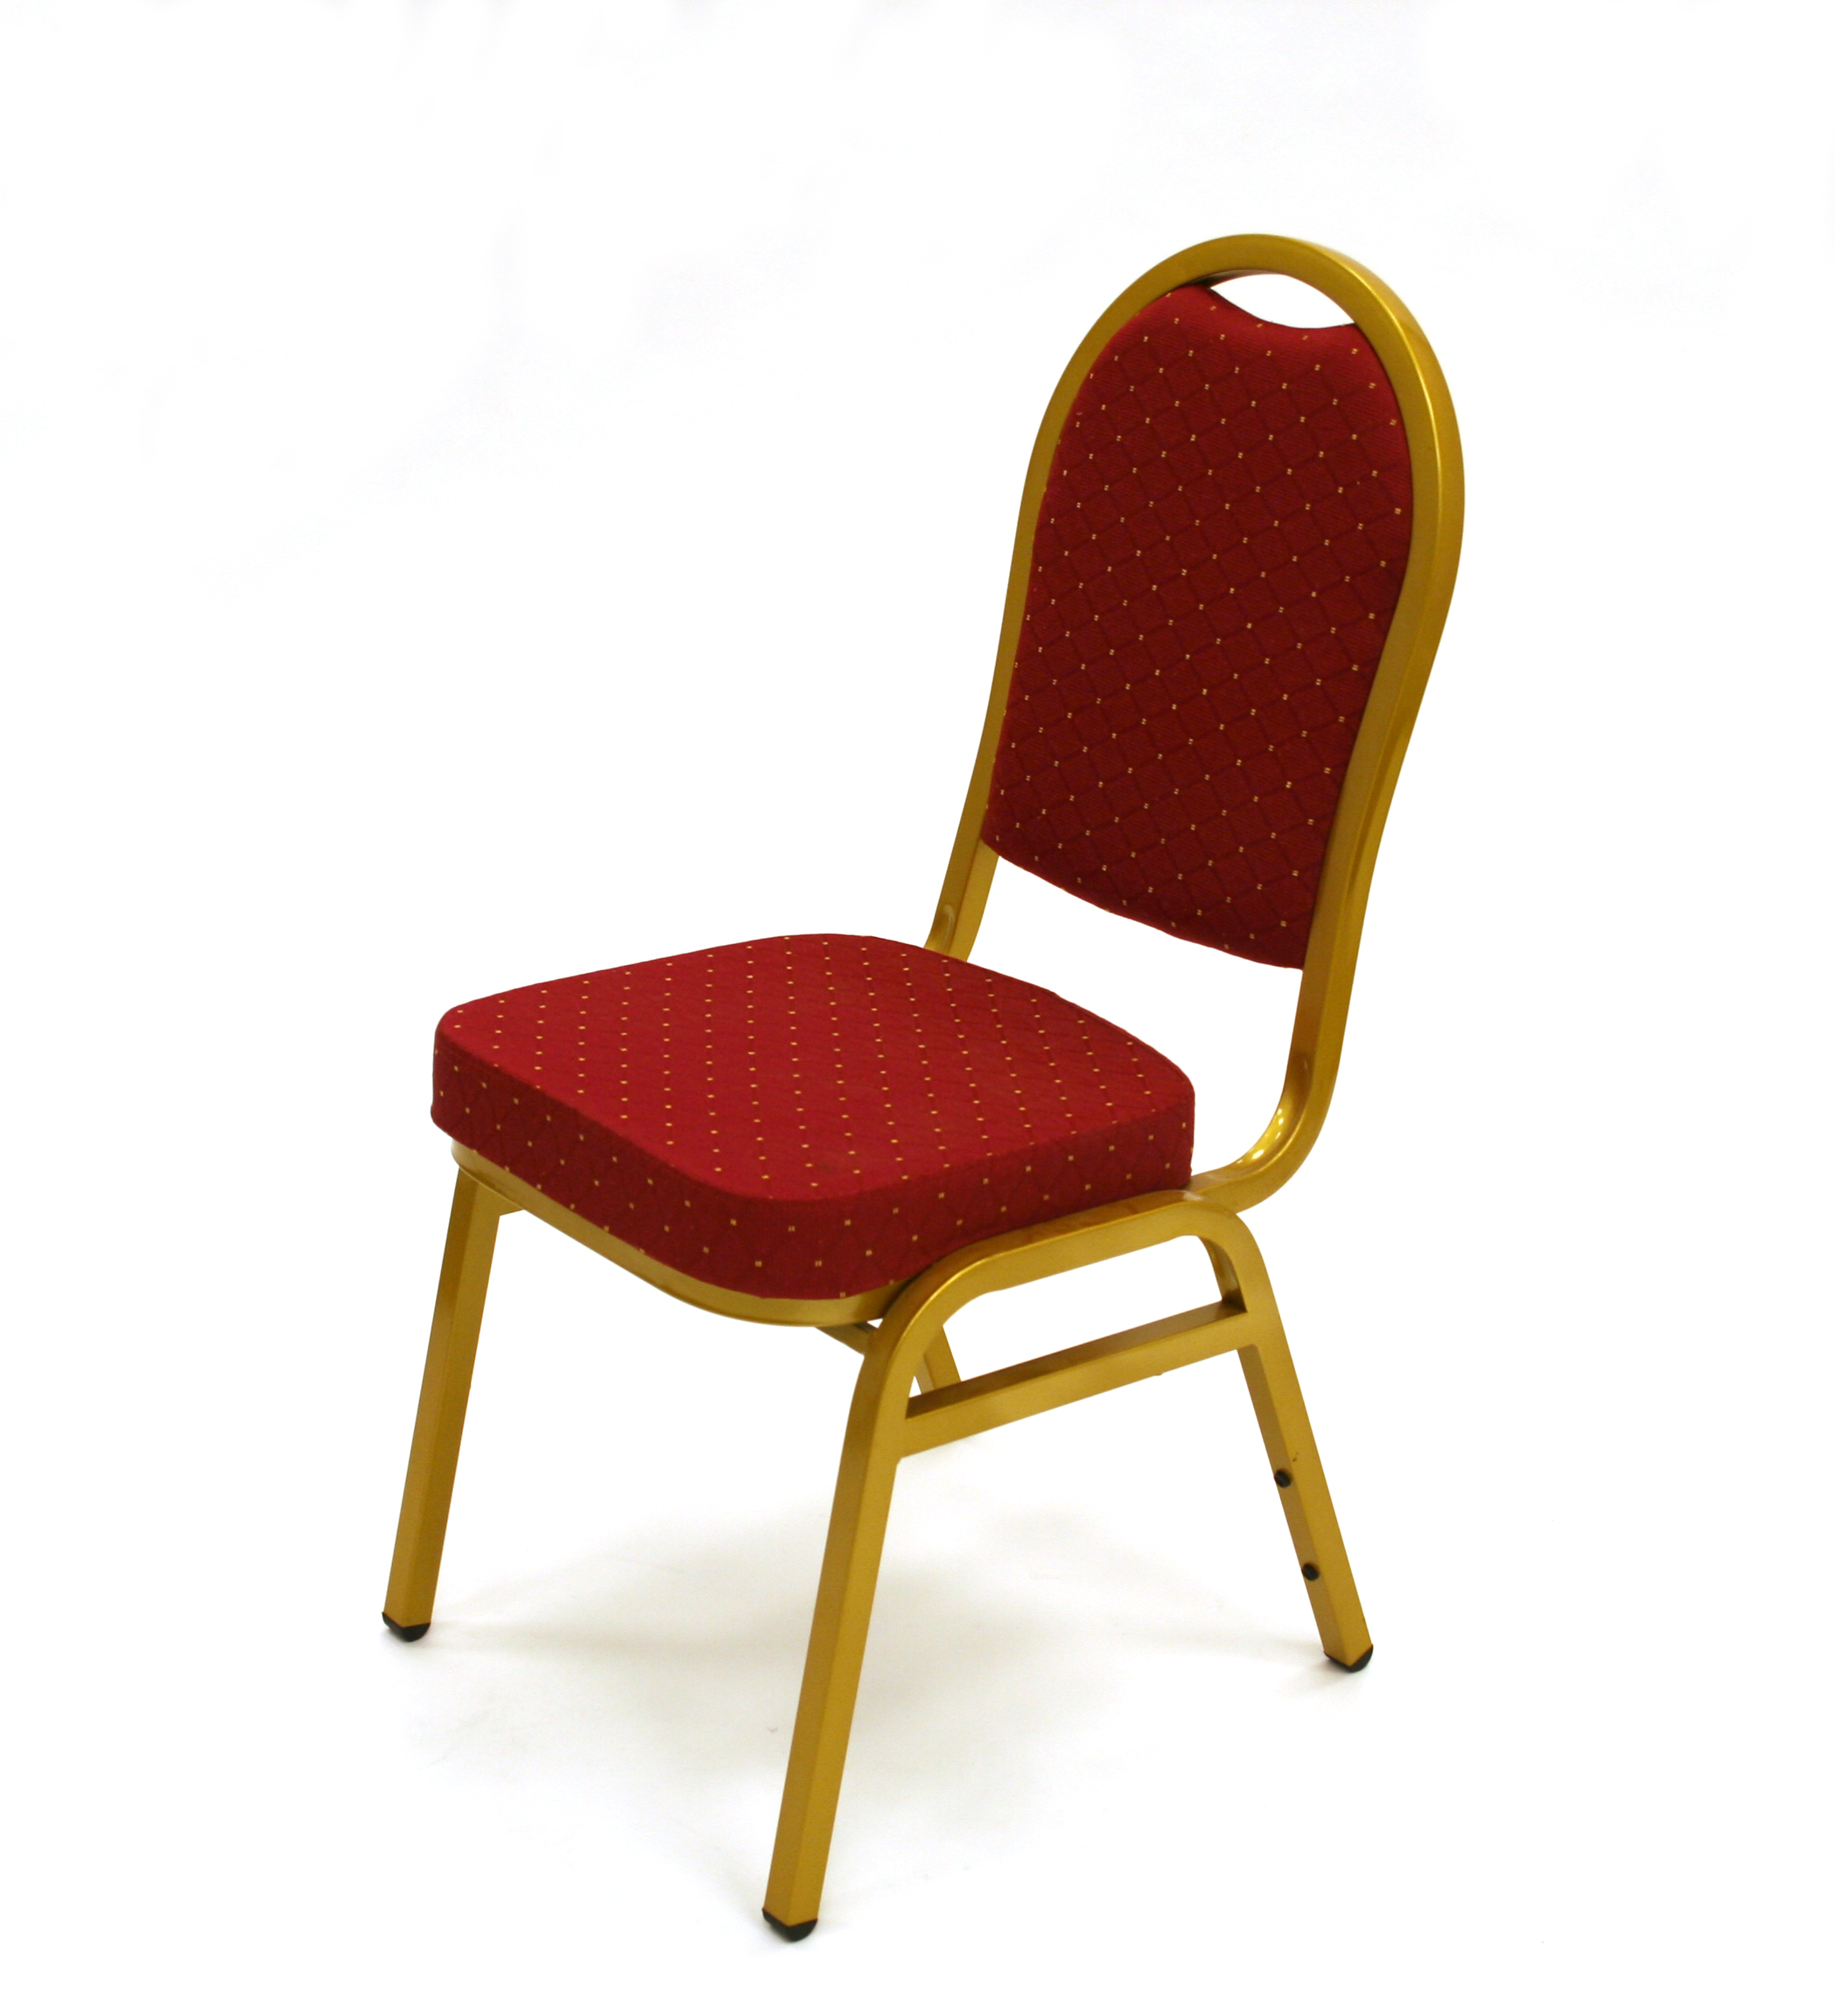 Premium Red Banqueting Chair - Gold Frame - BE Furniture Sales